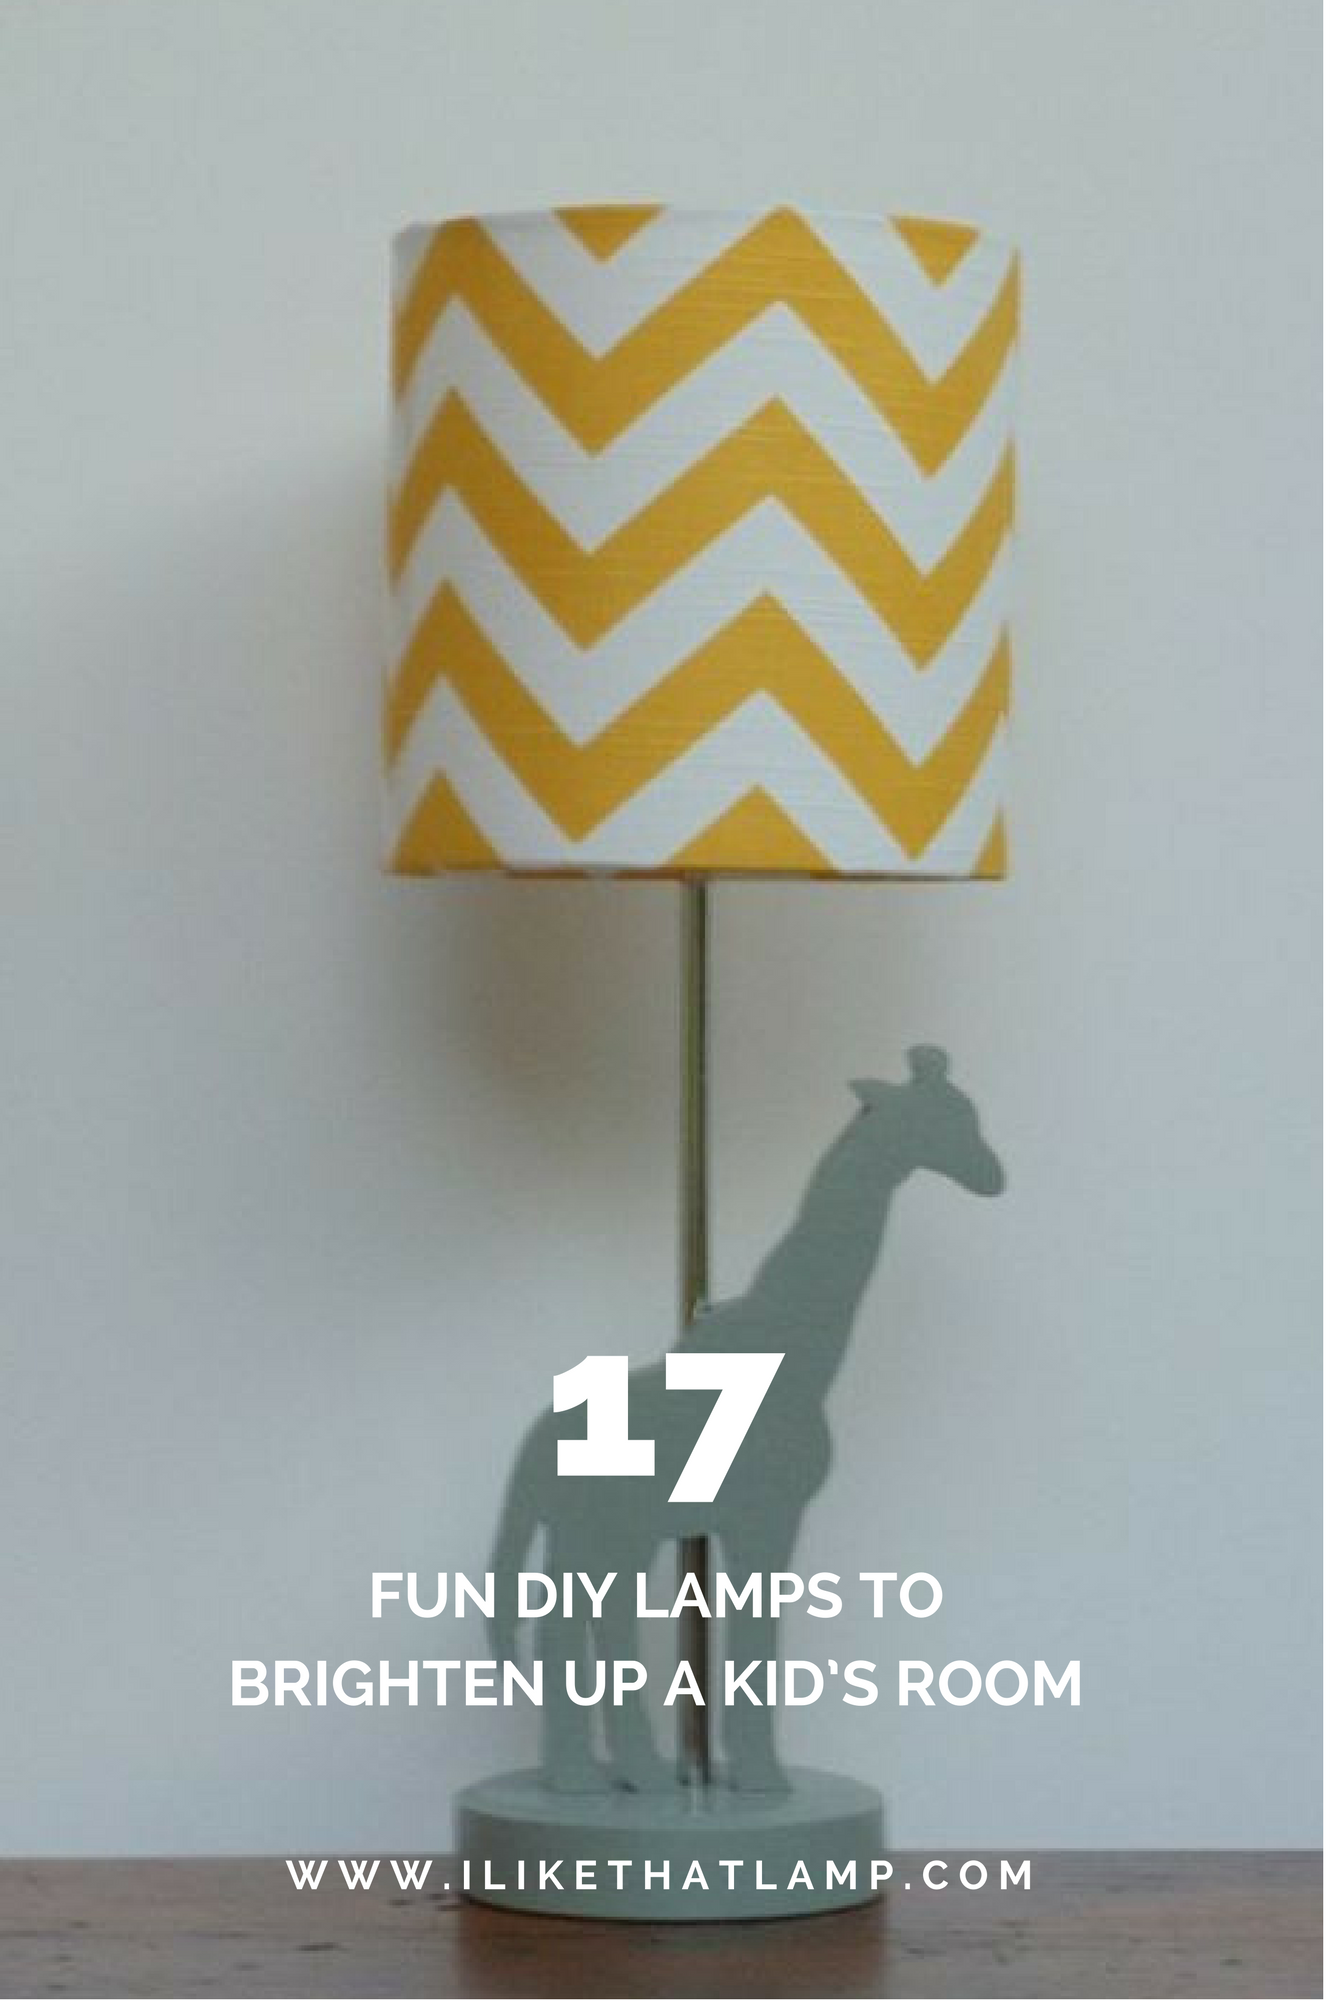 17 Fun Diy Lamps To Brighten Up A Kid S Room Read More At Www Ilikethatlamp